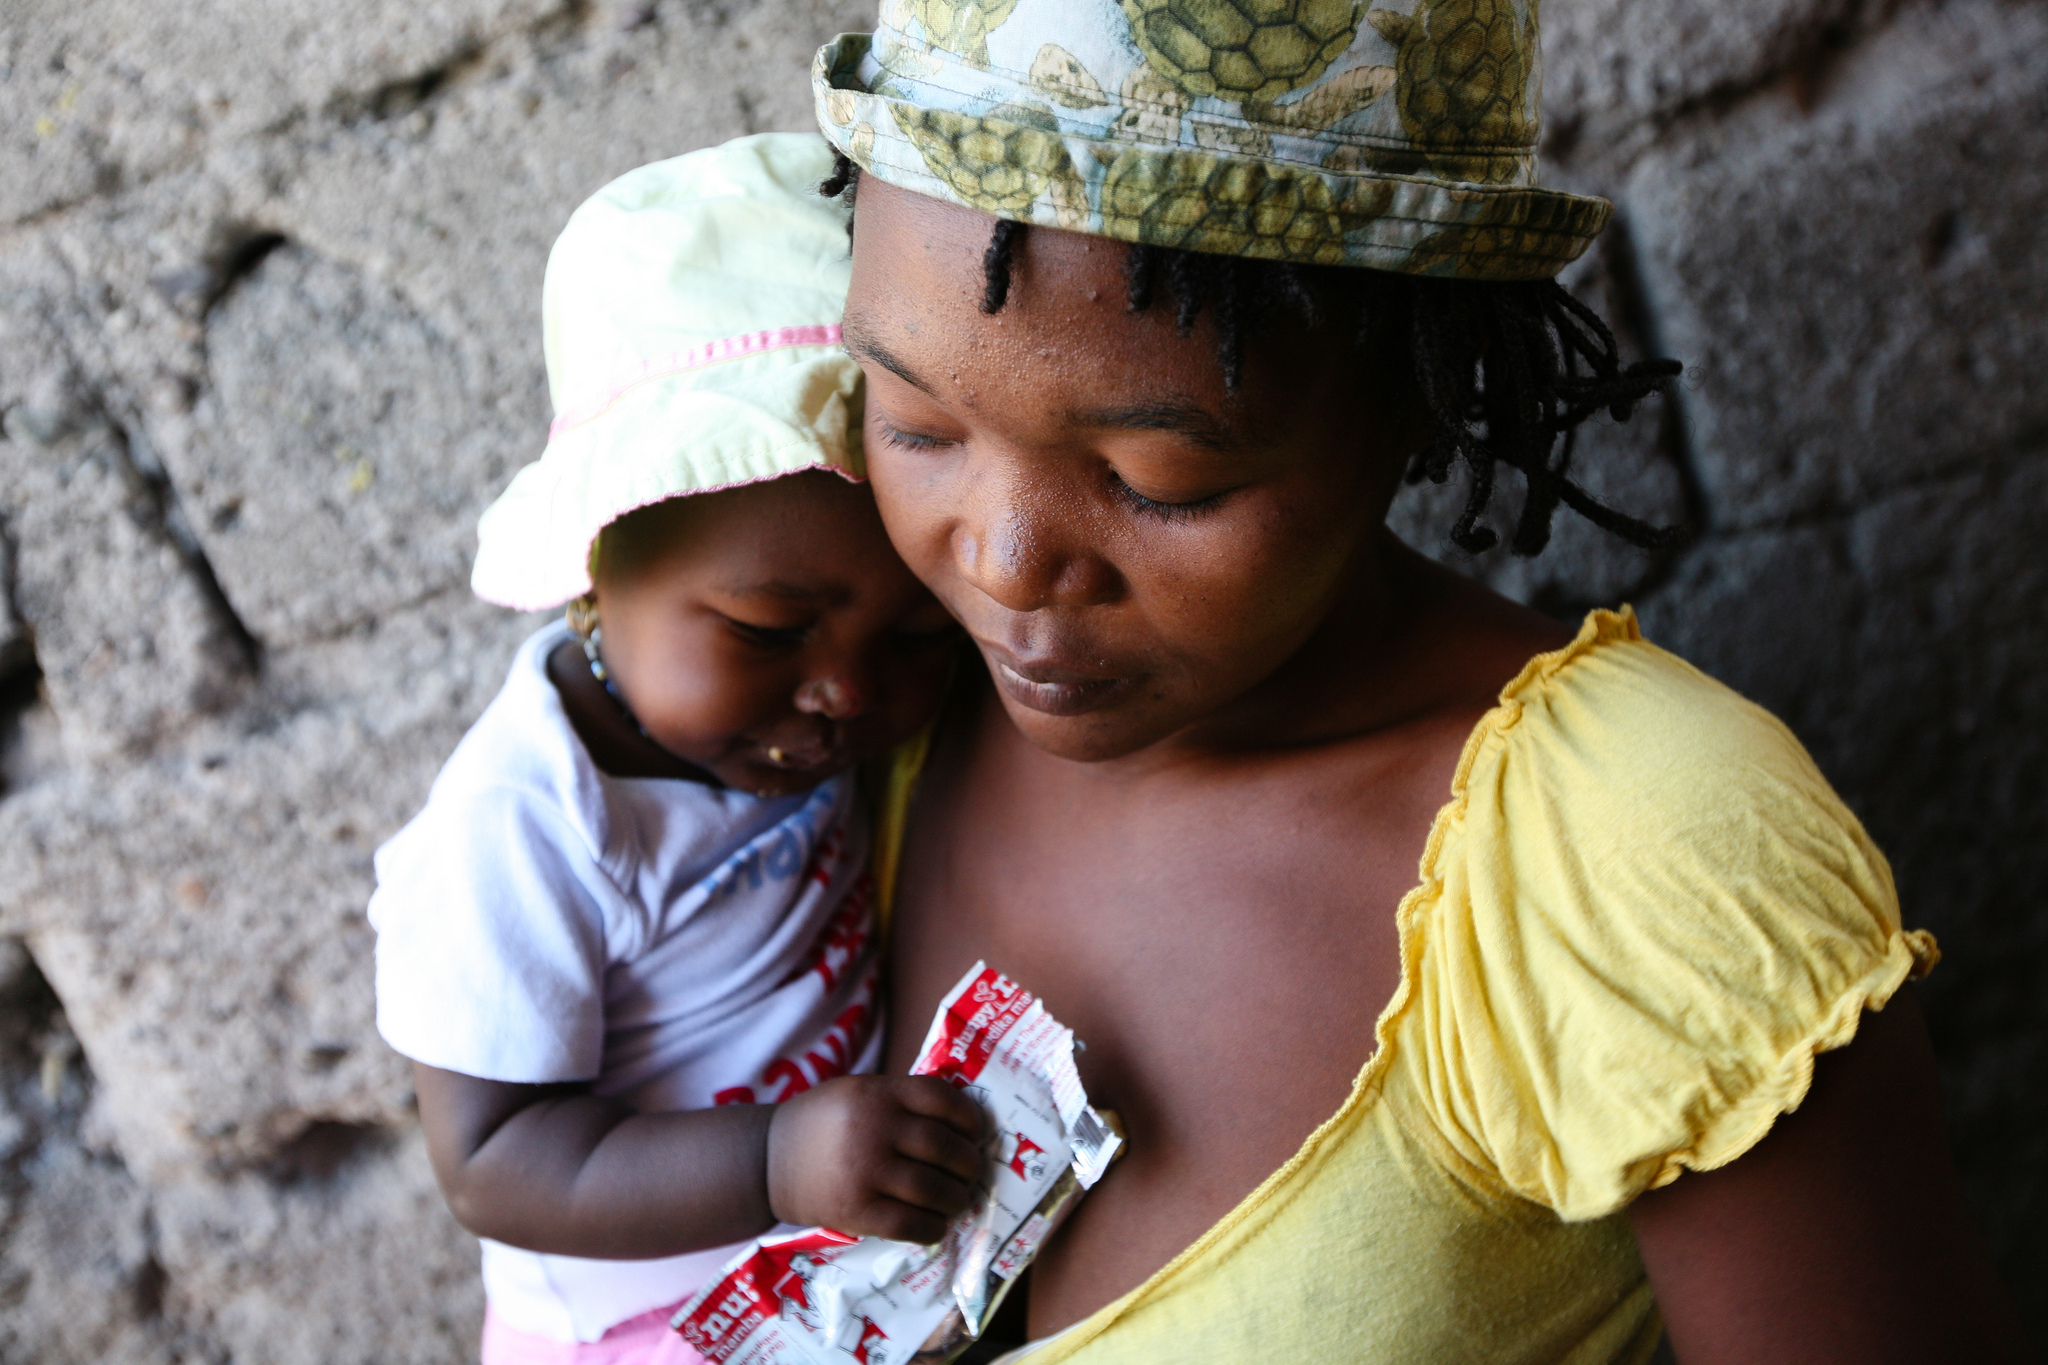 After Years of Bipartisan Advocacy, DHS Will Expedite Haitian Family Reunification